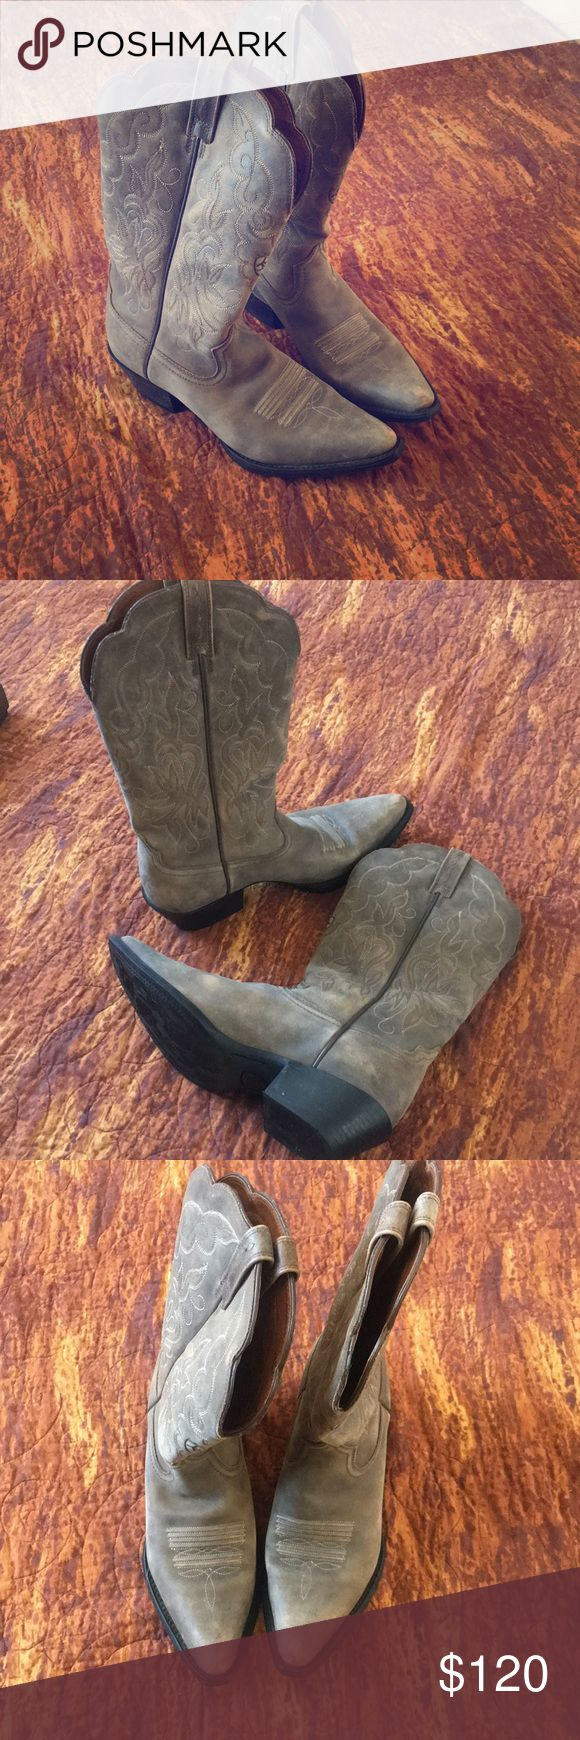 Like NEW Ariat cowboy Boots Leather I wore these one evening and have been sitting in my closet. Quality Ariat Brand- beautiful stitching. Classic cowgirl cowboy boots! Ariat Shoes